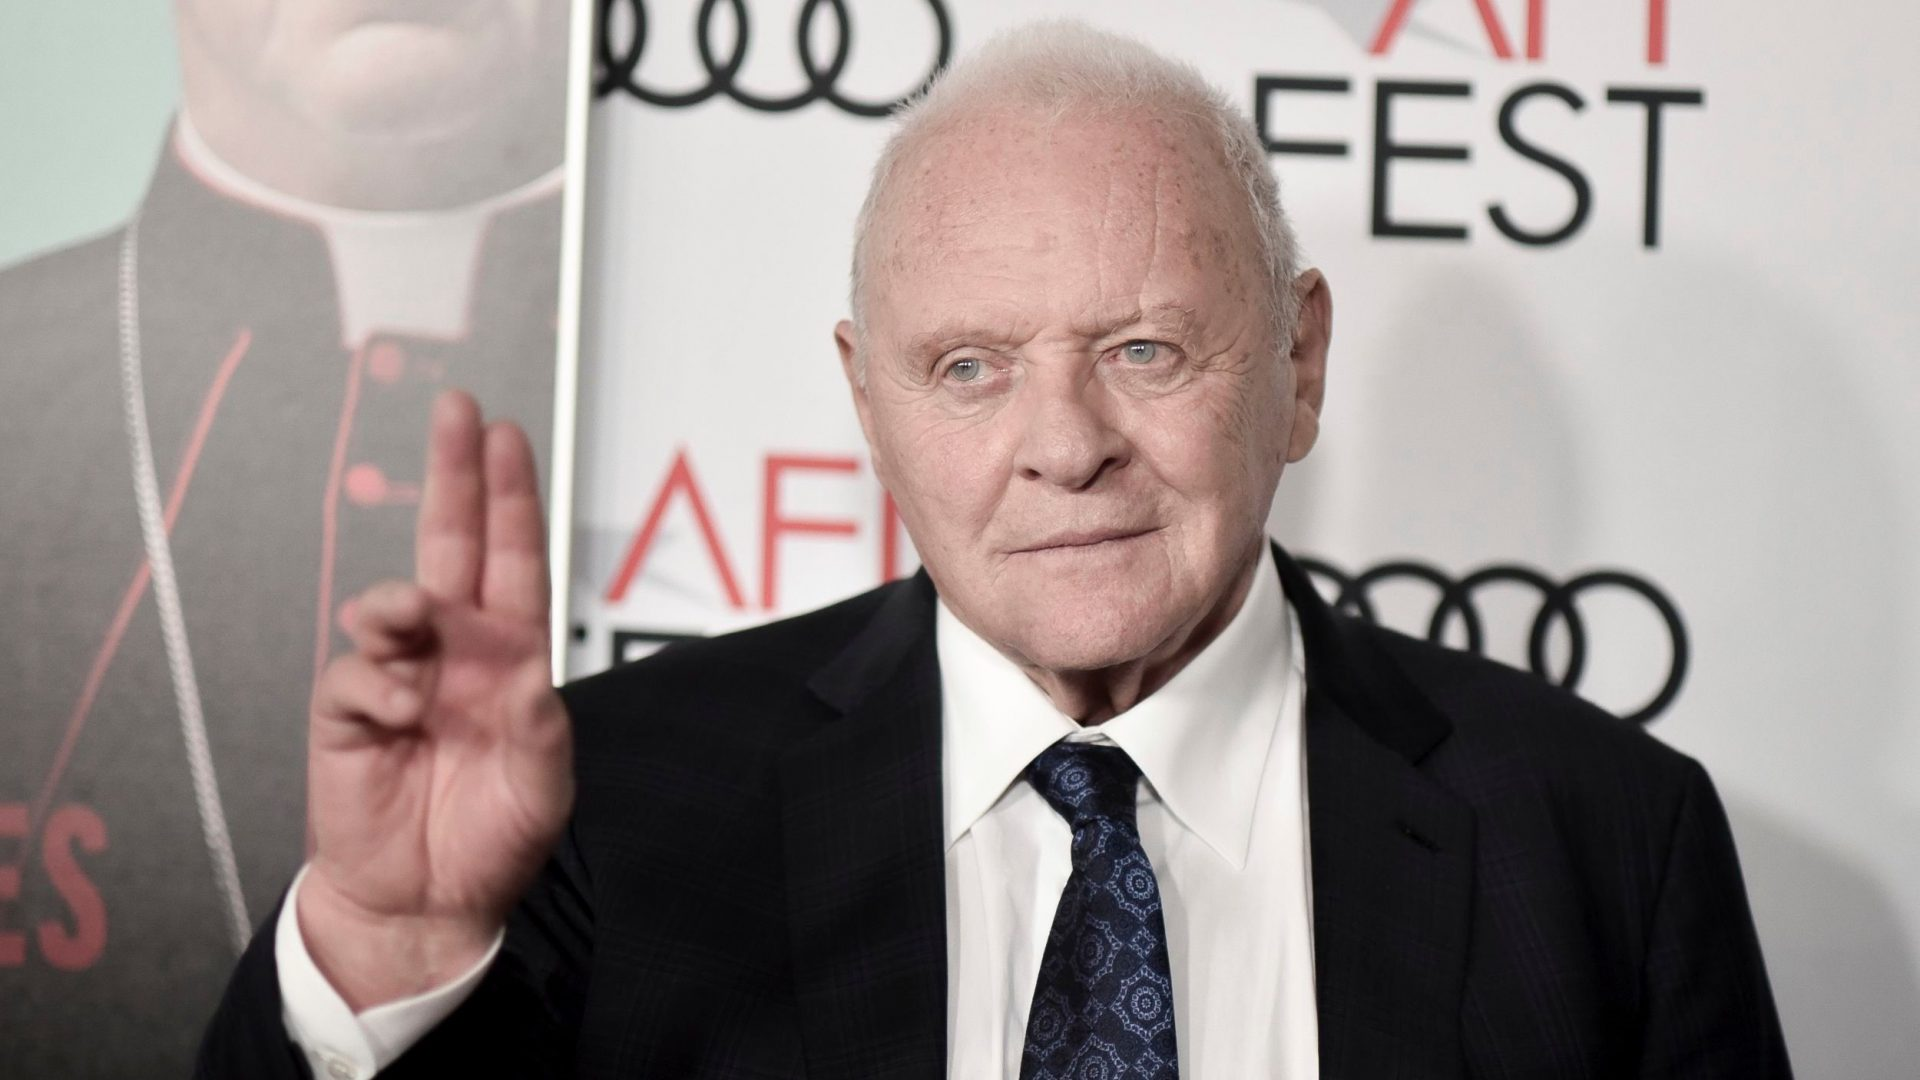 """Mandatory Credit: Photo by Richard Shotwell/Invision/AP/Shutterstock (10479290e)Anthony Hopkins attends 2019 AFI Fest - """"The Two Popes,"""" at the TCL Chinese Theatre, in Los Angeles2019 AFI Fest - """"The Two Popes"""", Los Angeles, USA - 18 Nov 2019."""